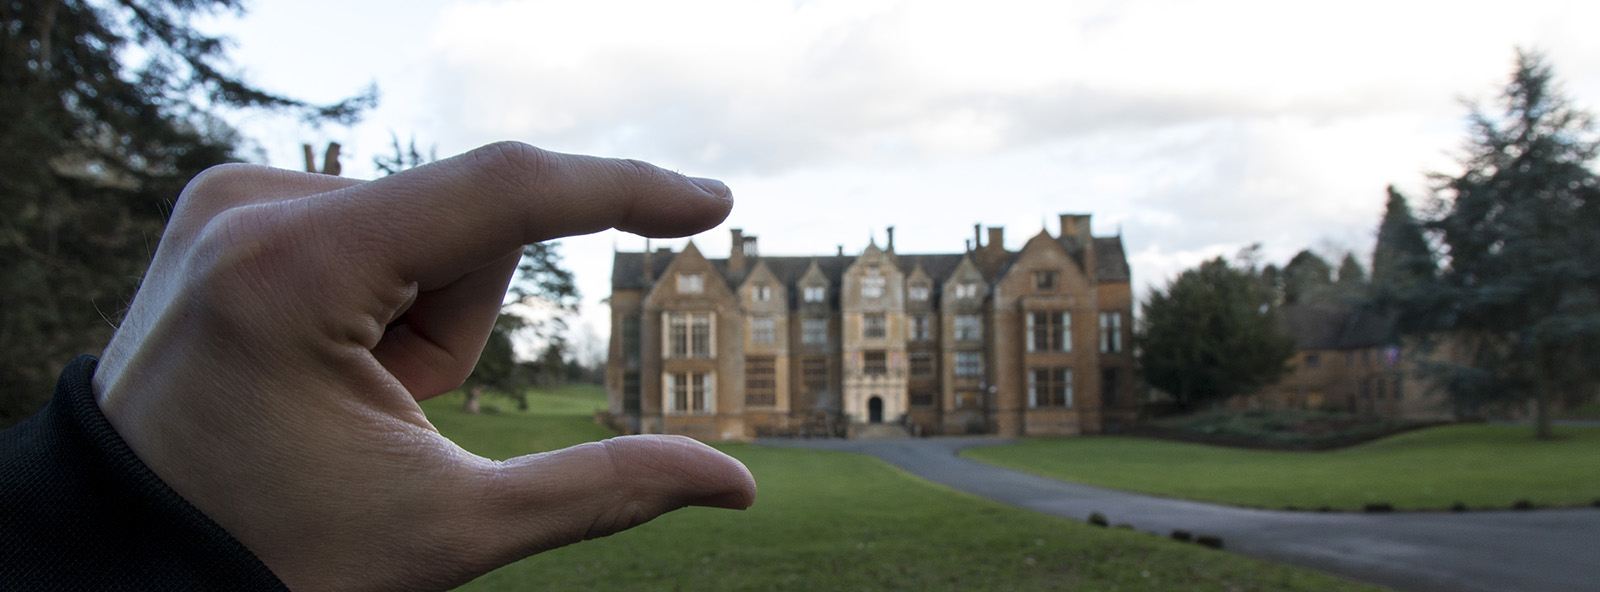 Wroxton Abbey Pinched